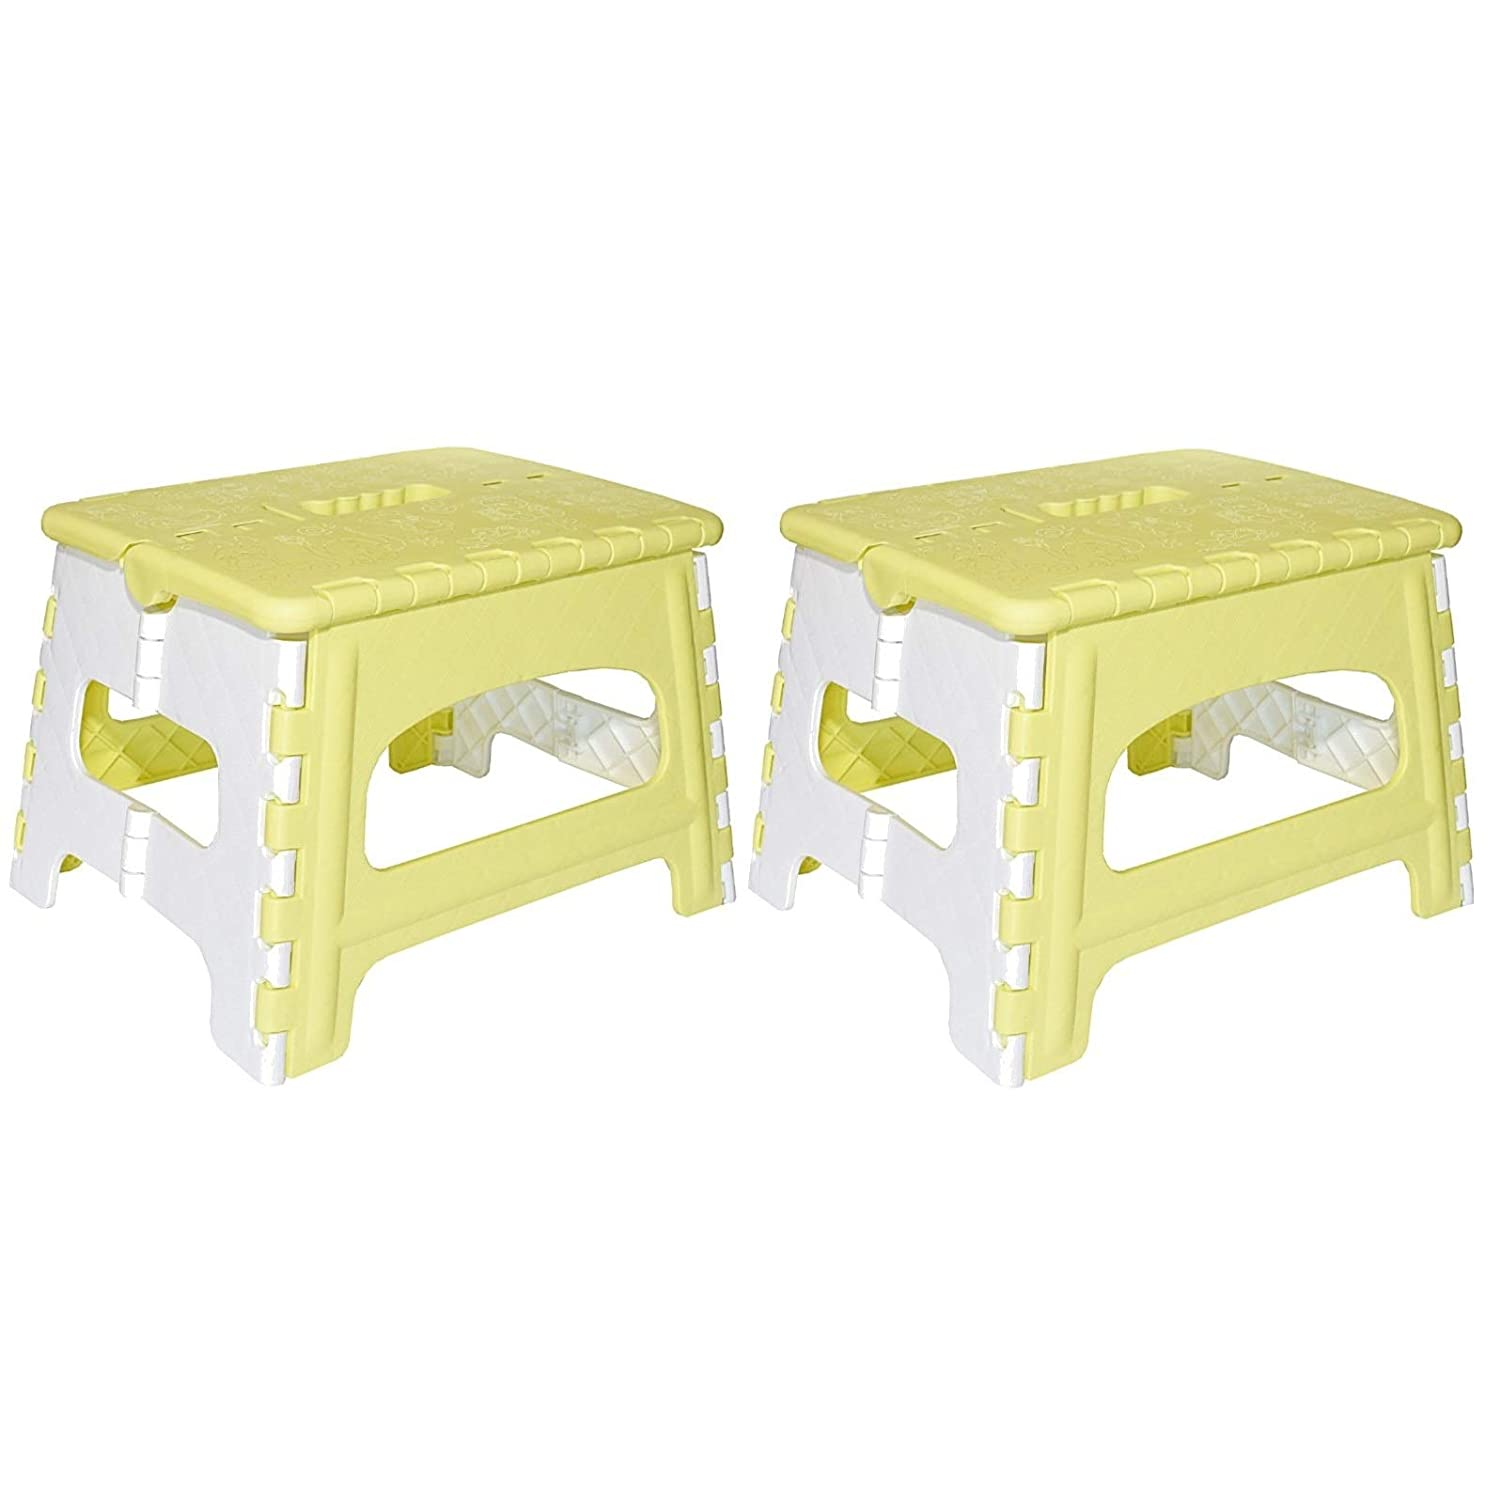 Green Direct Folding Step Stool for Kids and Adult for Bedside and Kitchen and Bathroom use, Blue, Pack of 2